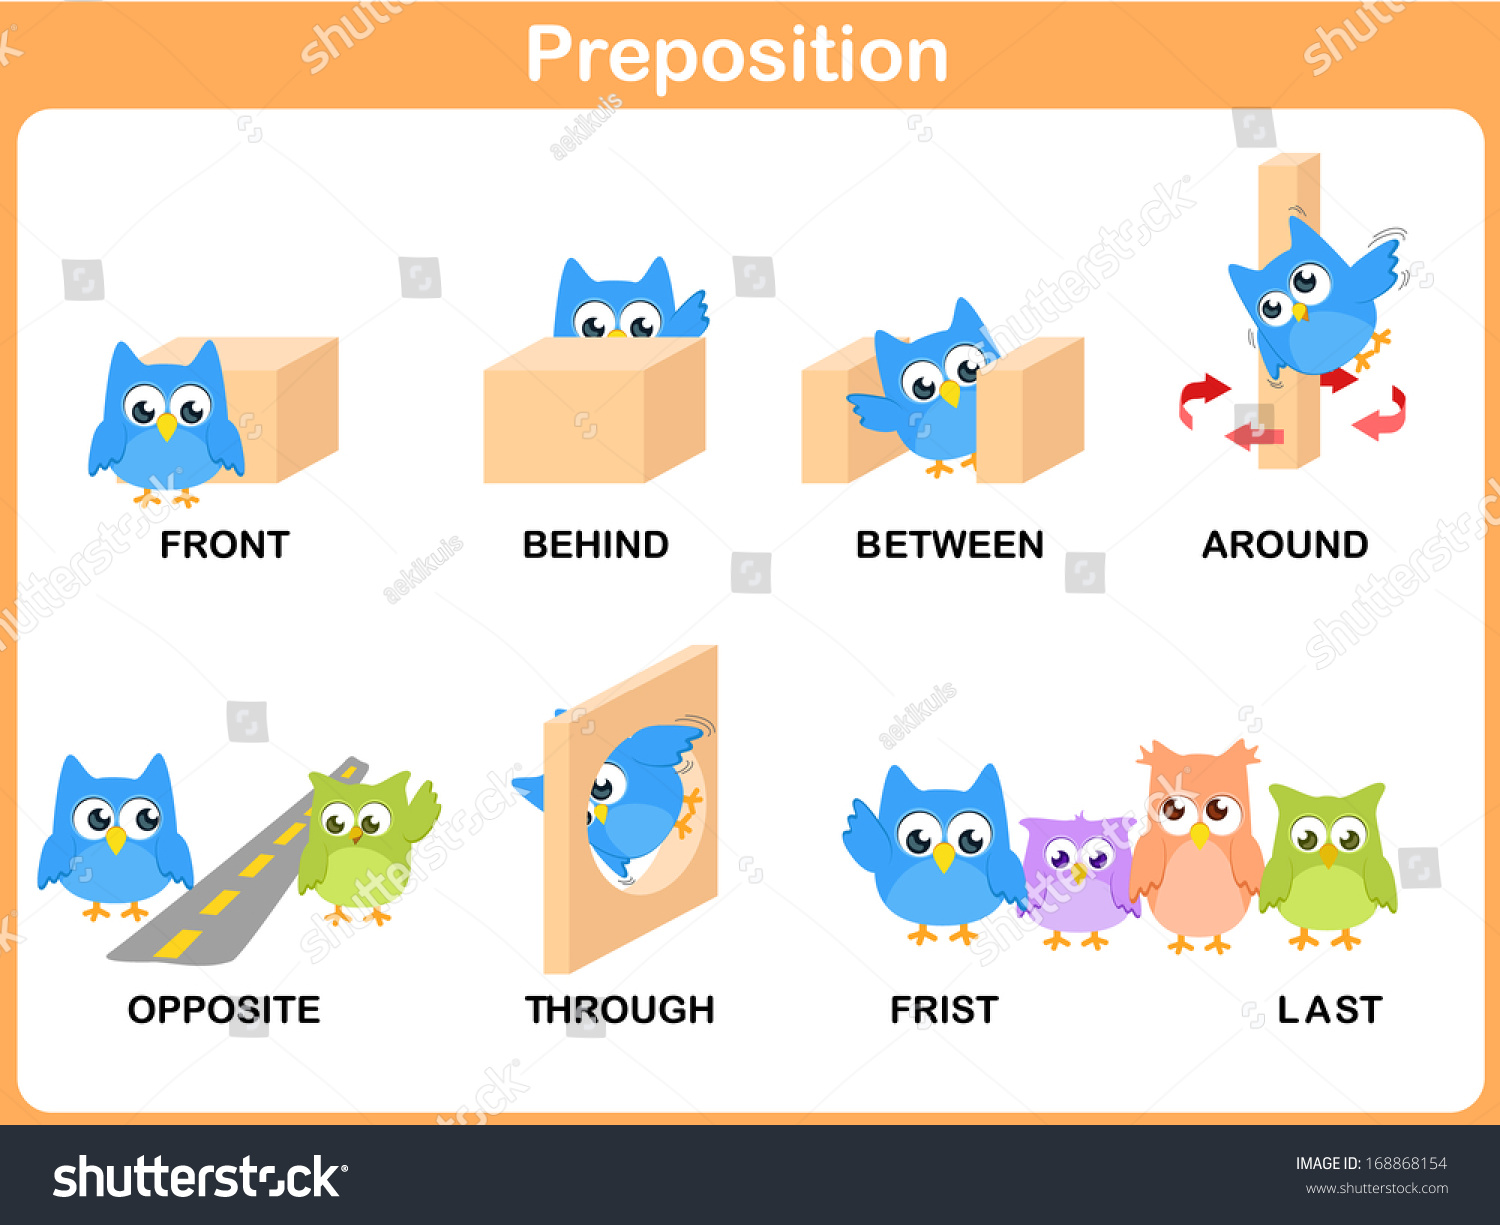 Preposition Motion Preschool Vectores En Stock